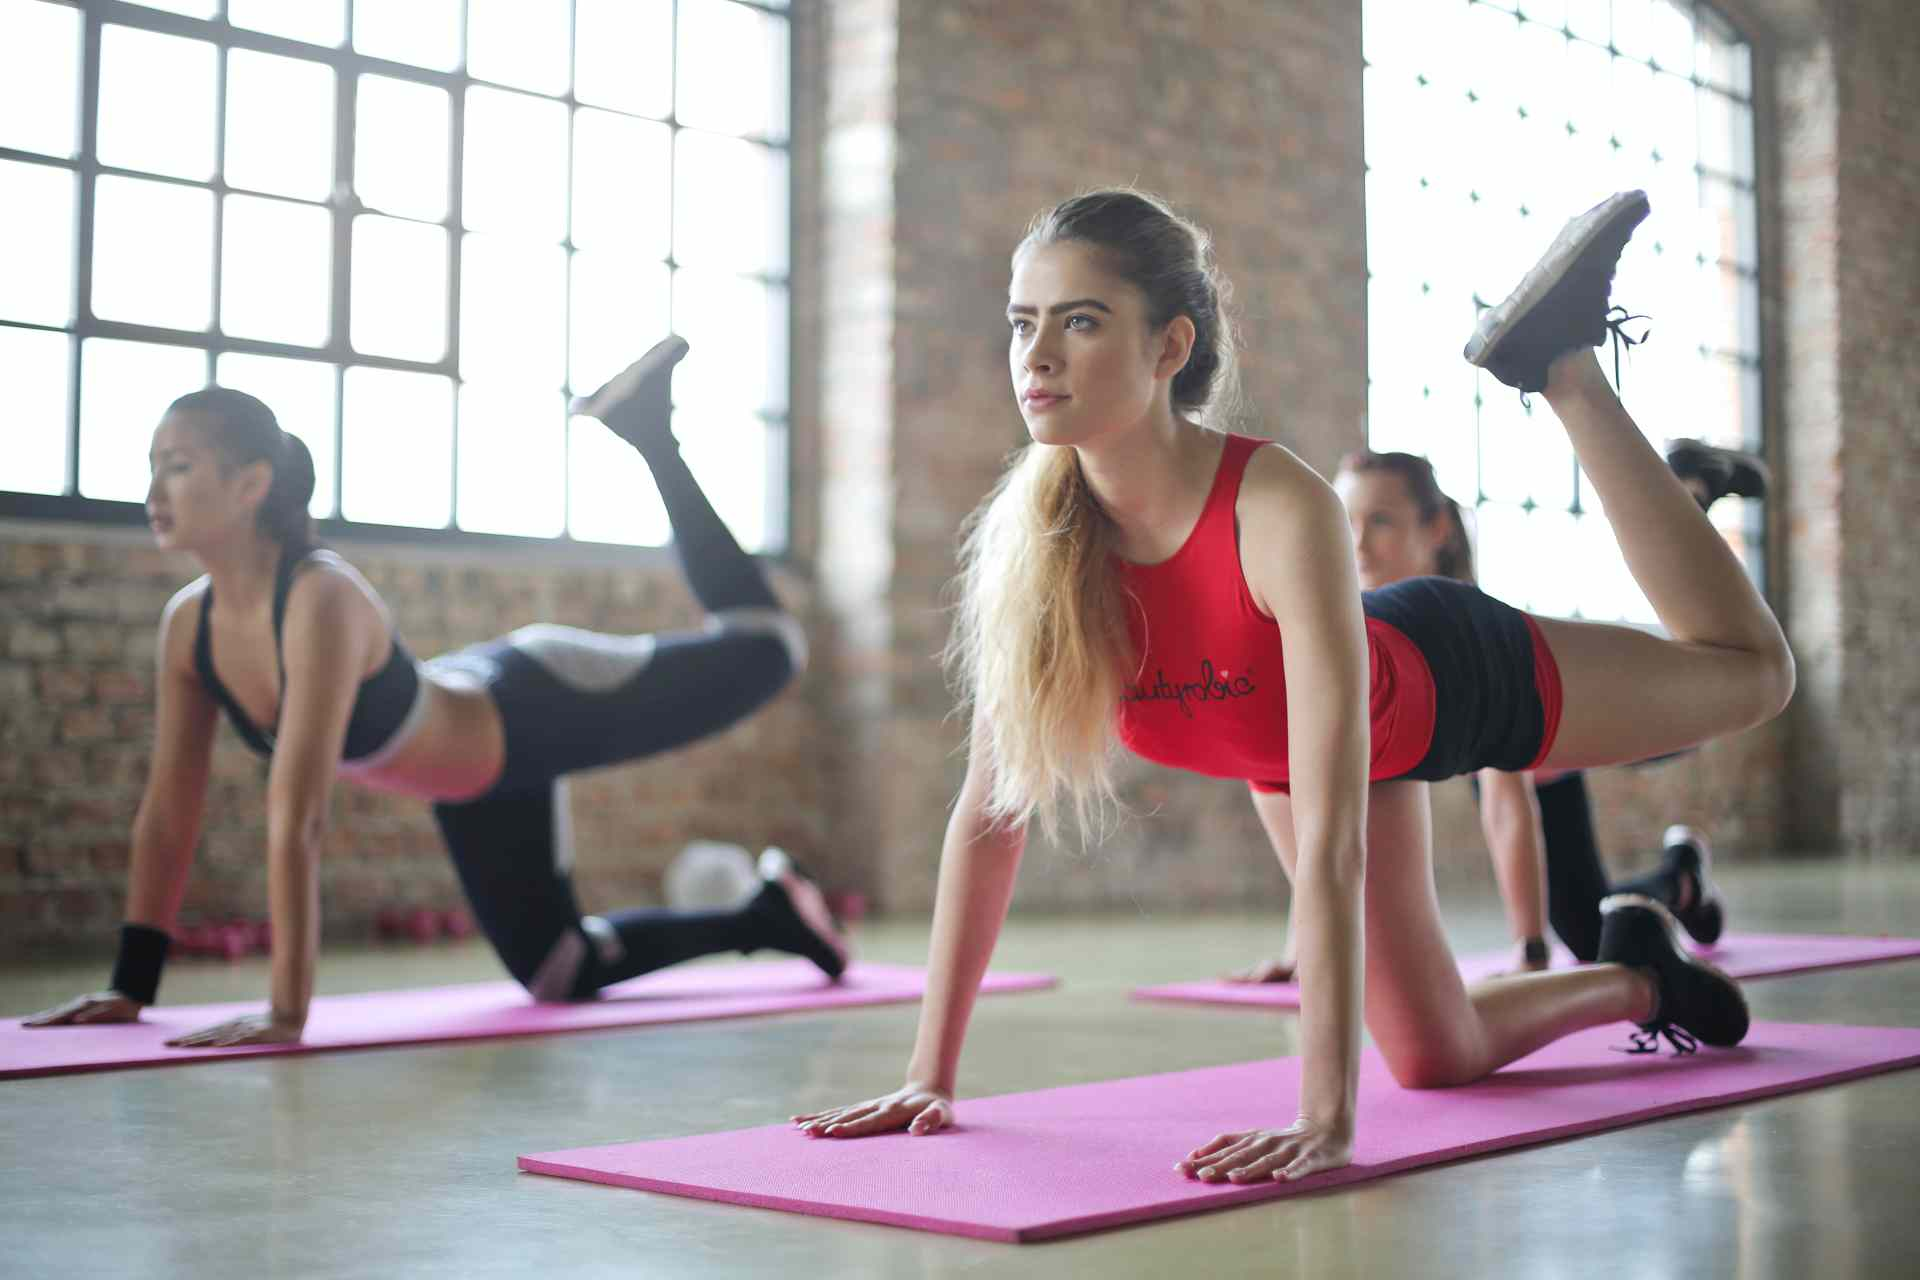 How to Get More Clients as a Personal Trainer?